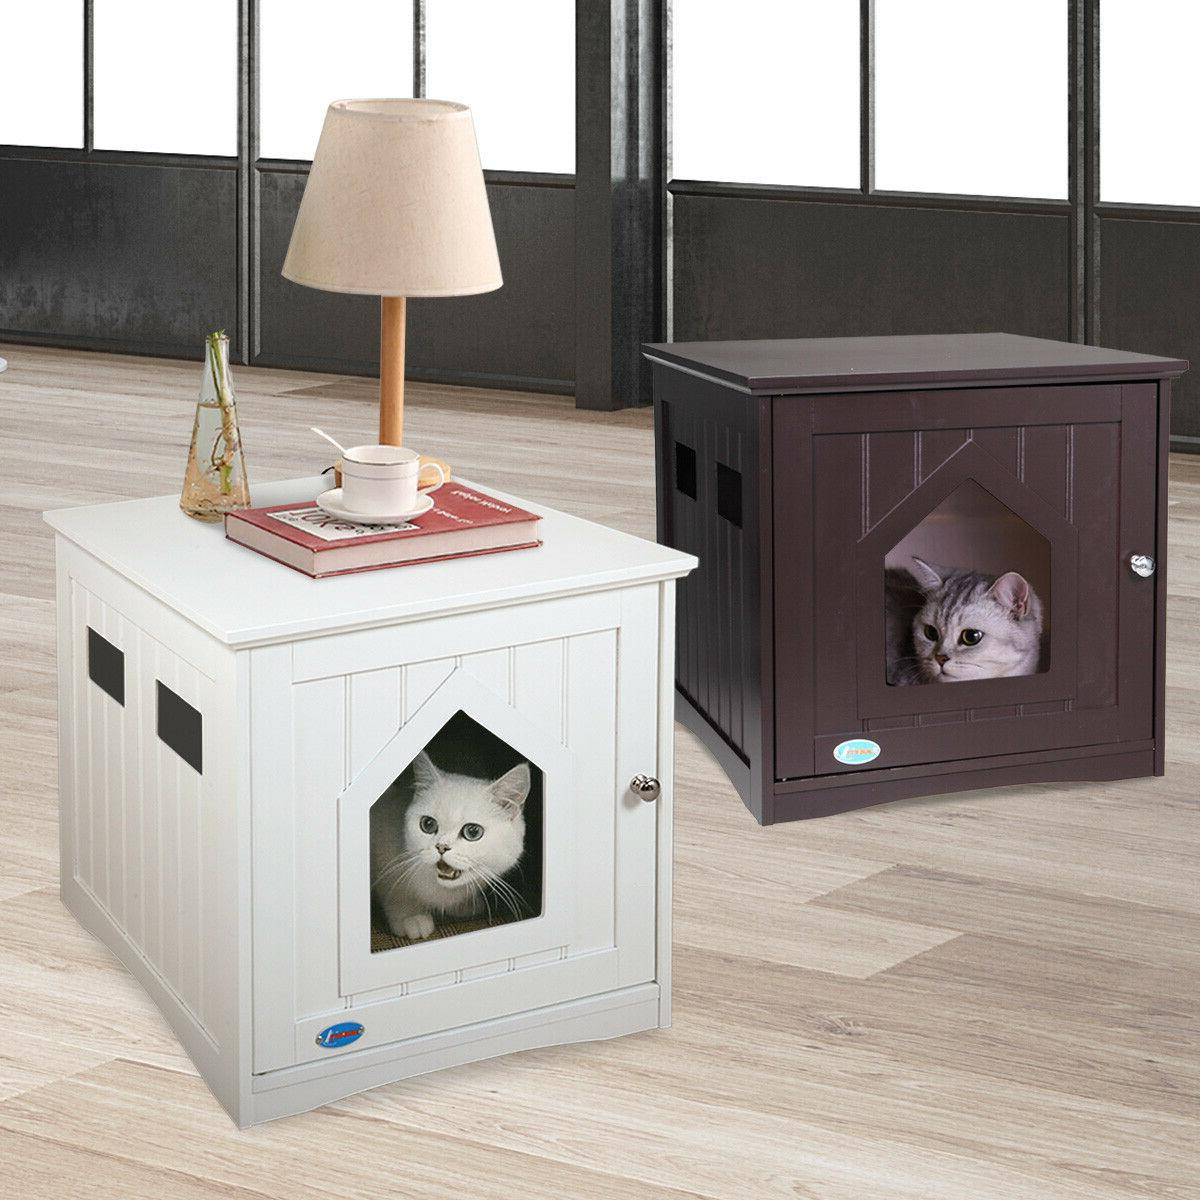 pet cat hidden litter box furniture nightstand